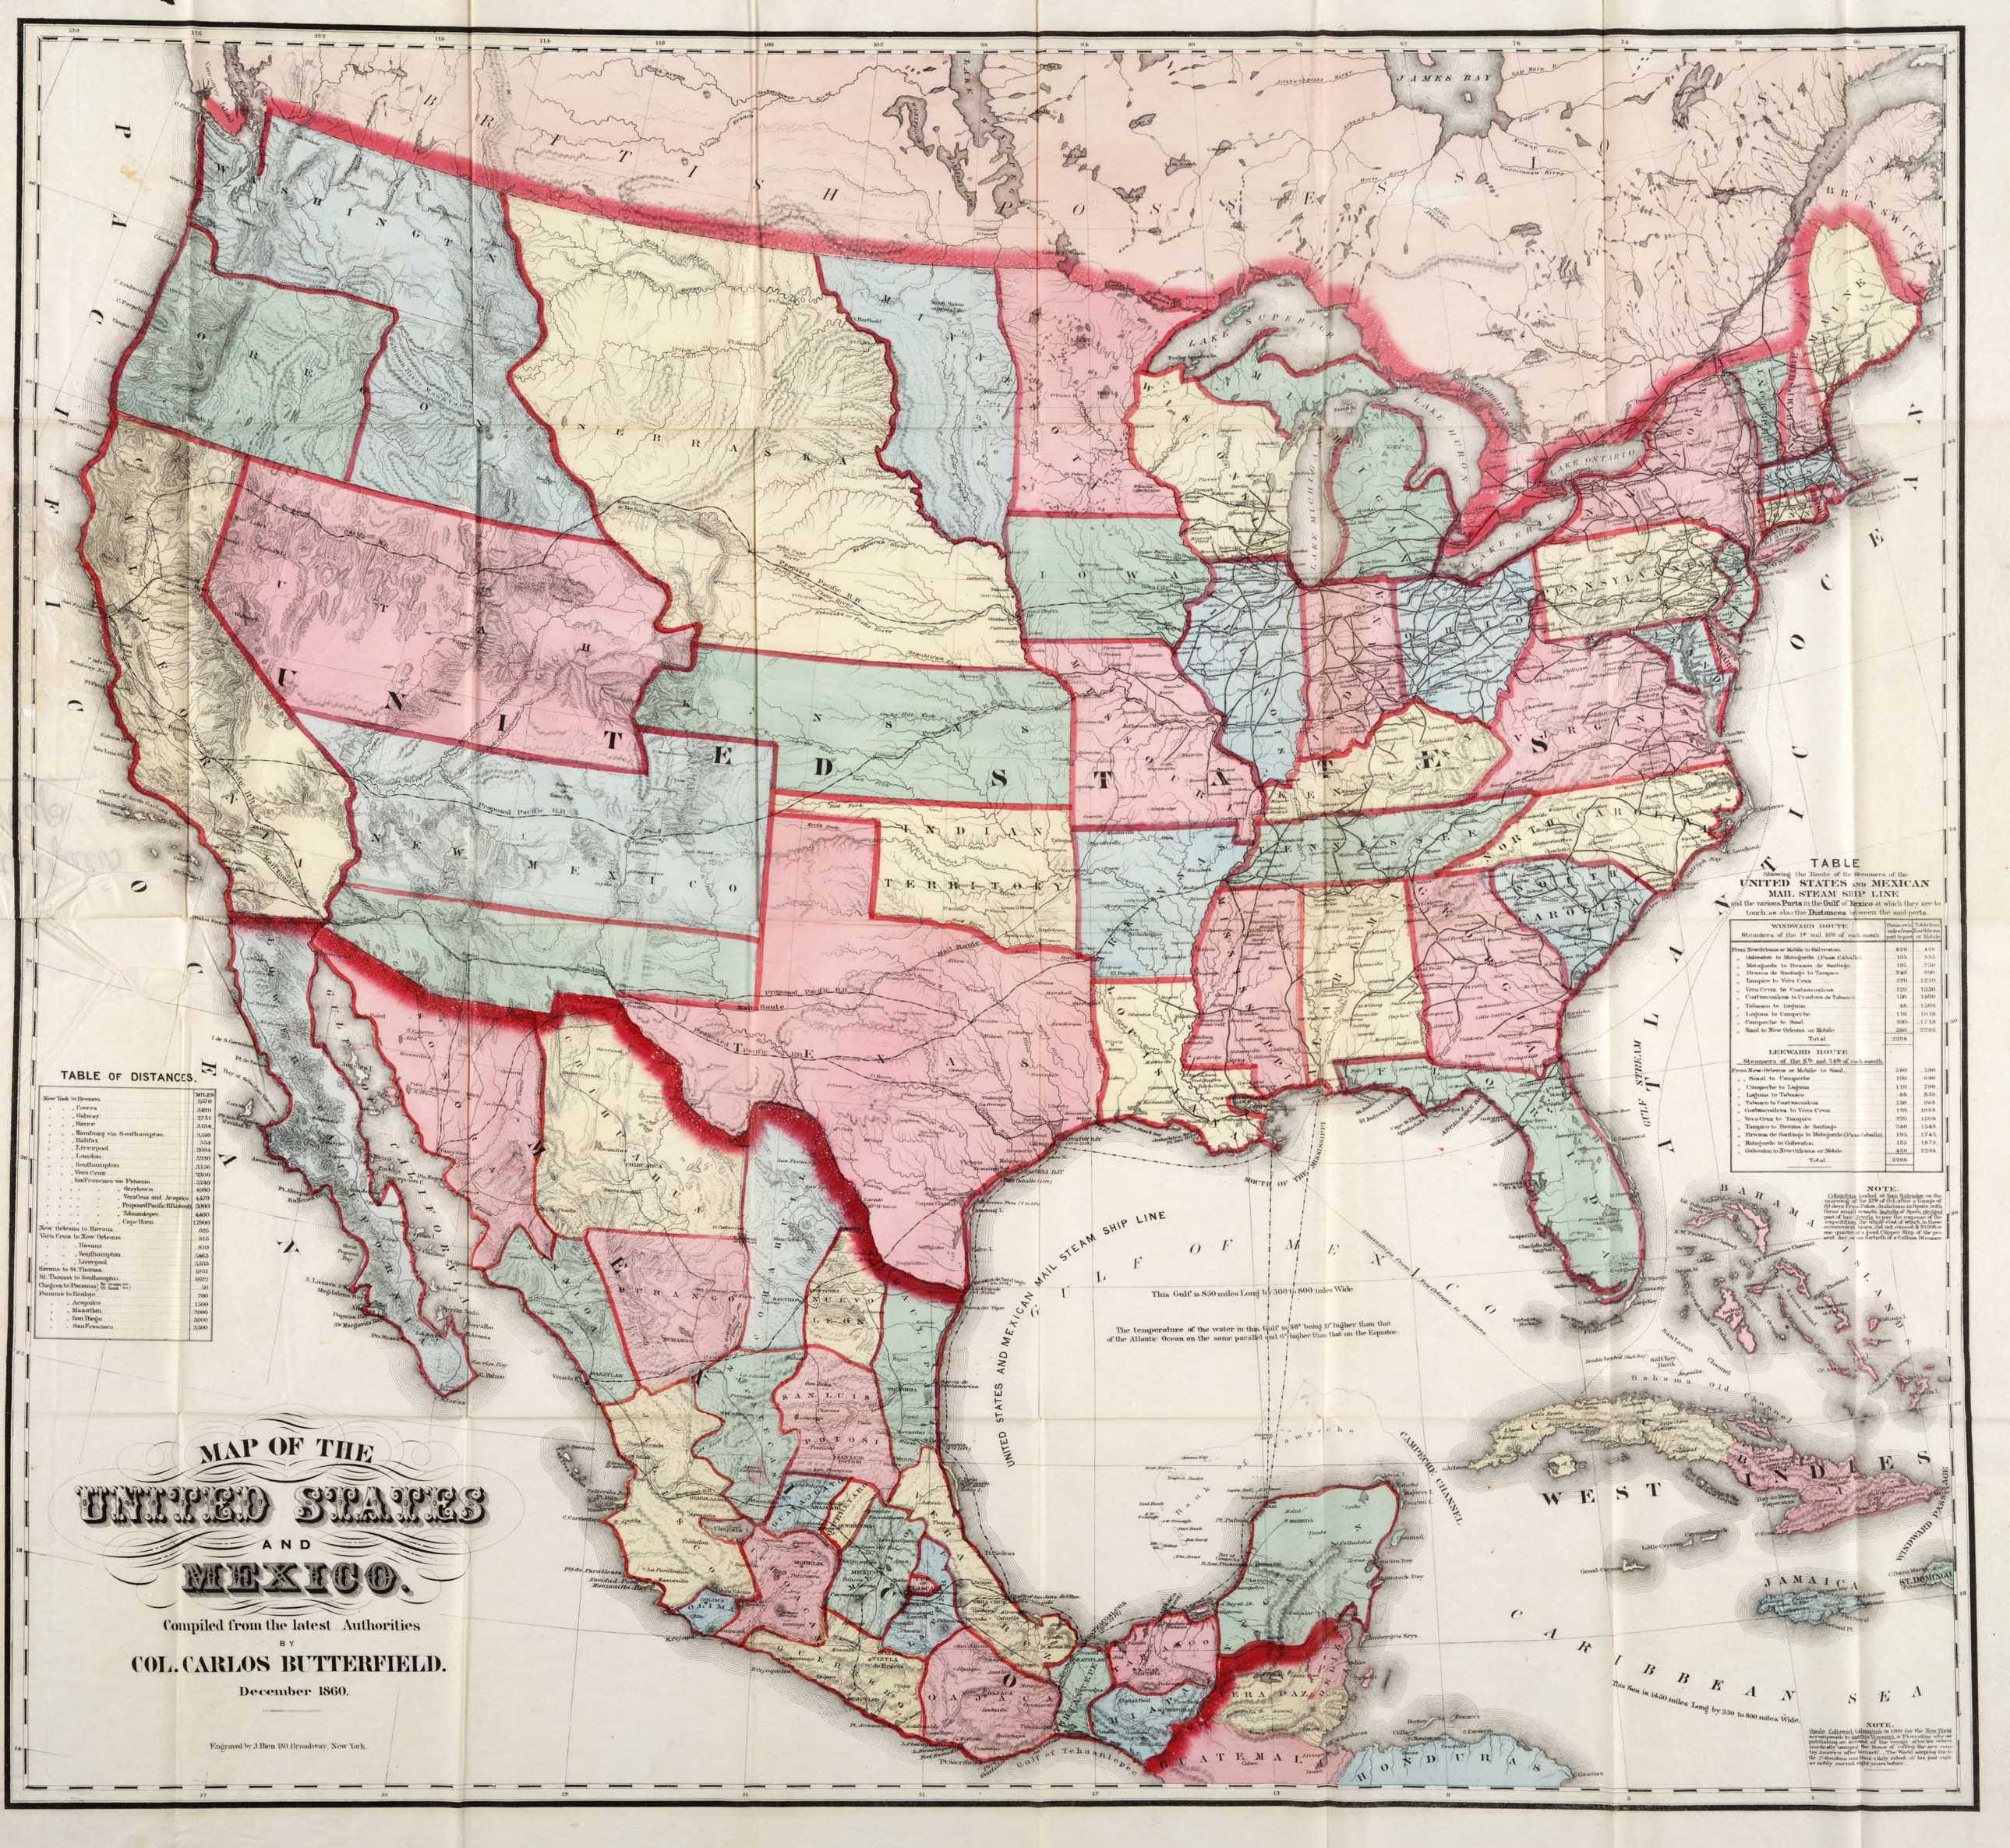 Carlos Butterfield, 'Map of the United States and Mexico,' 1860. Huntington Library, Art Collections, and Botanical Gardens.